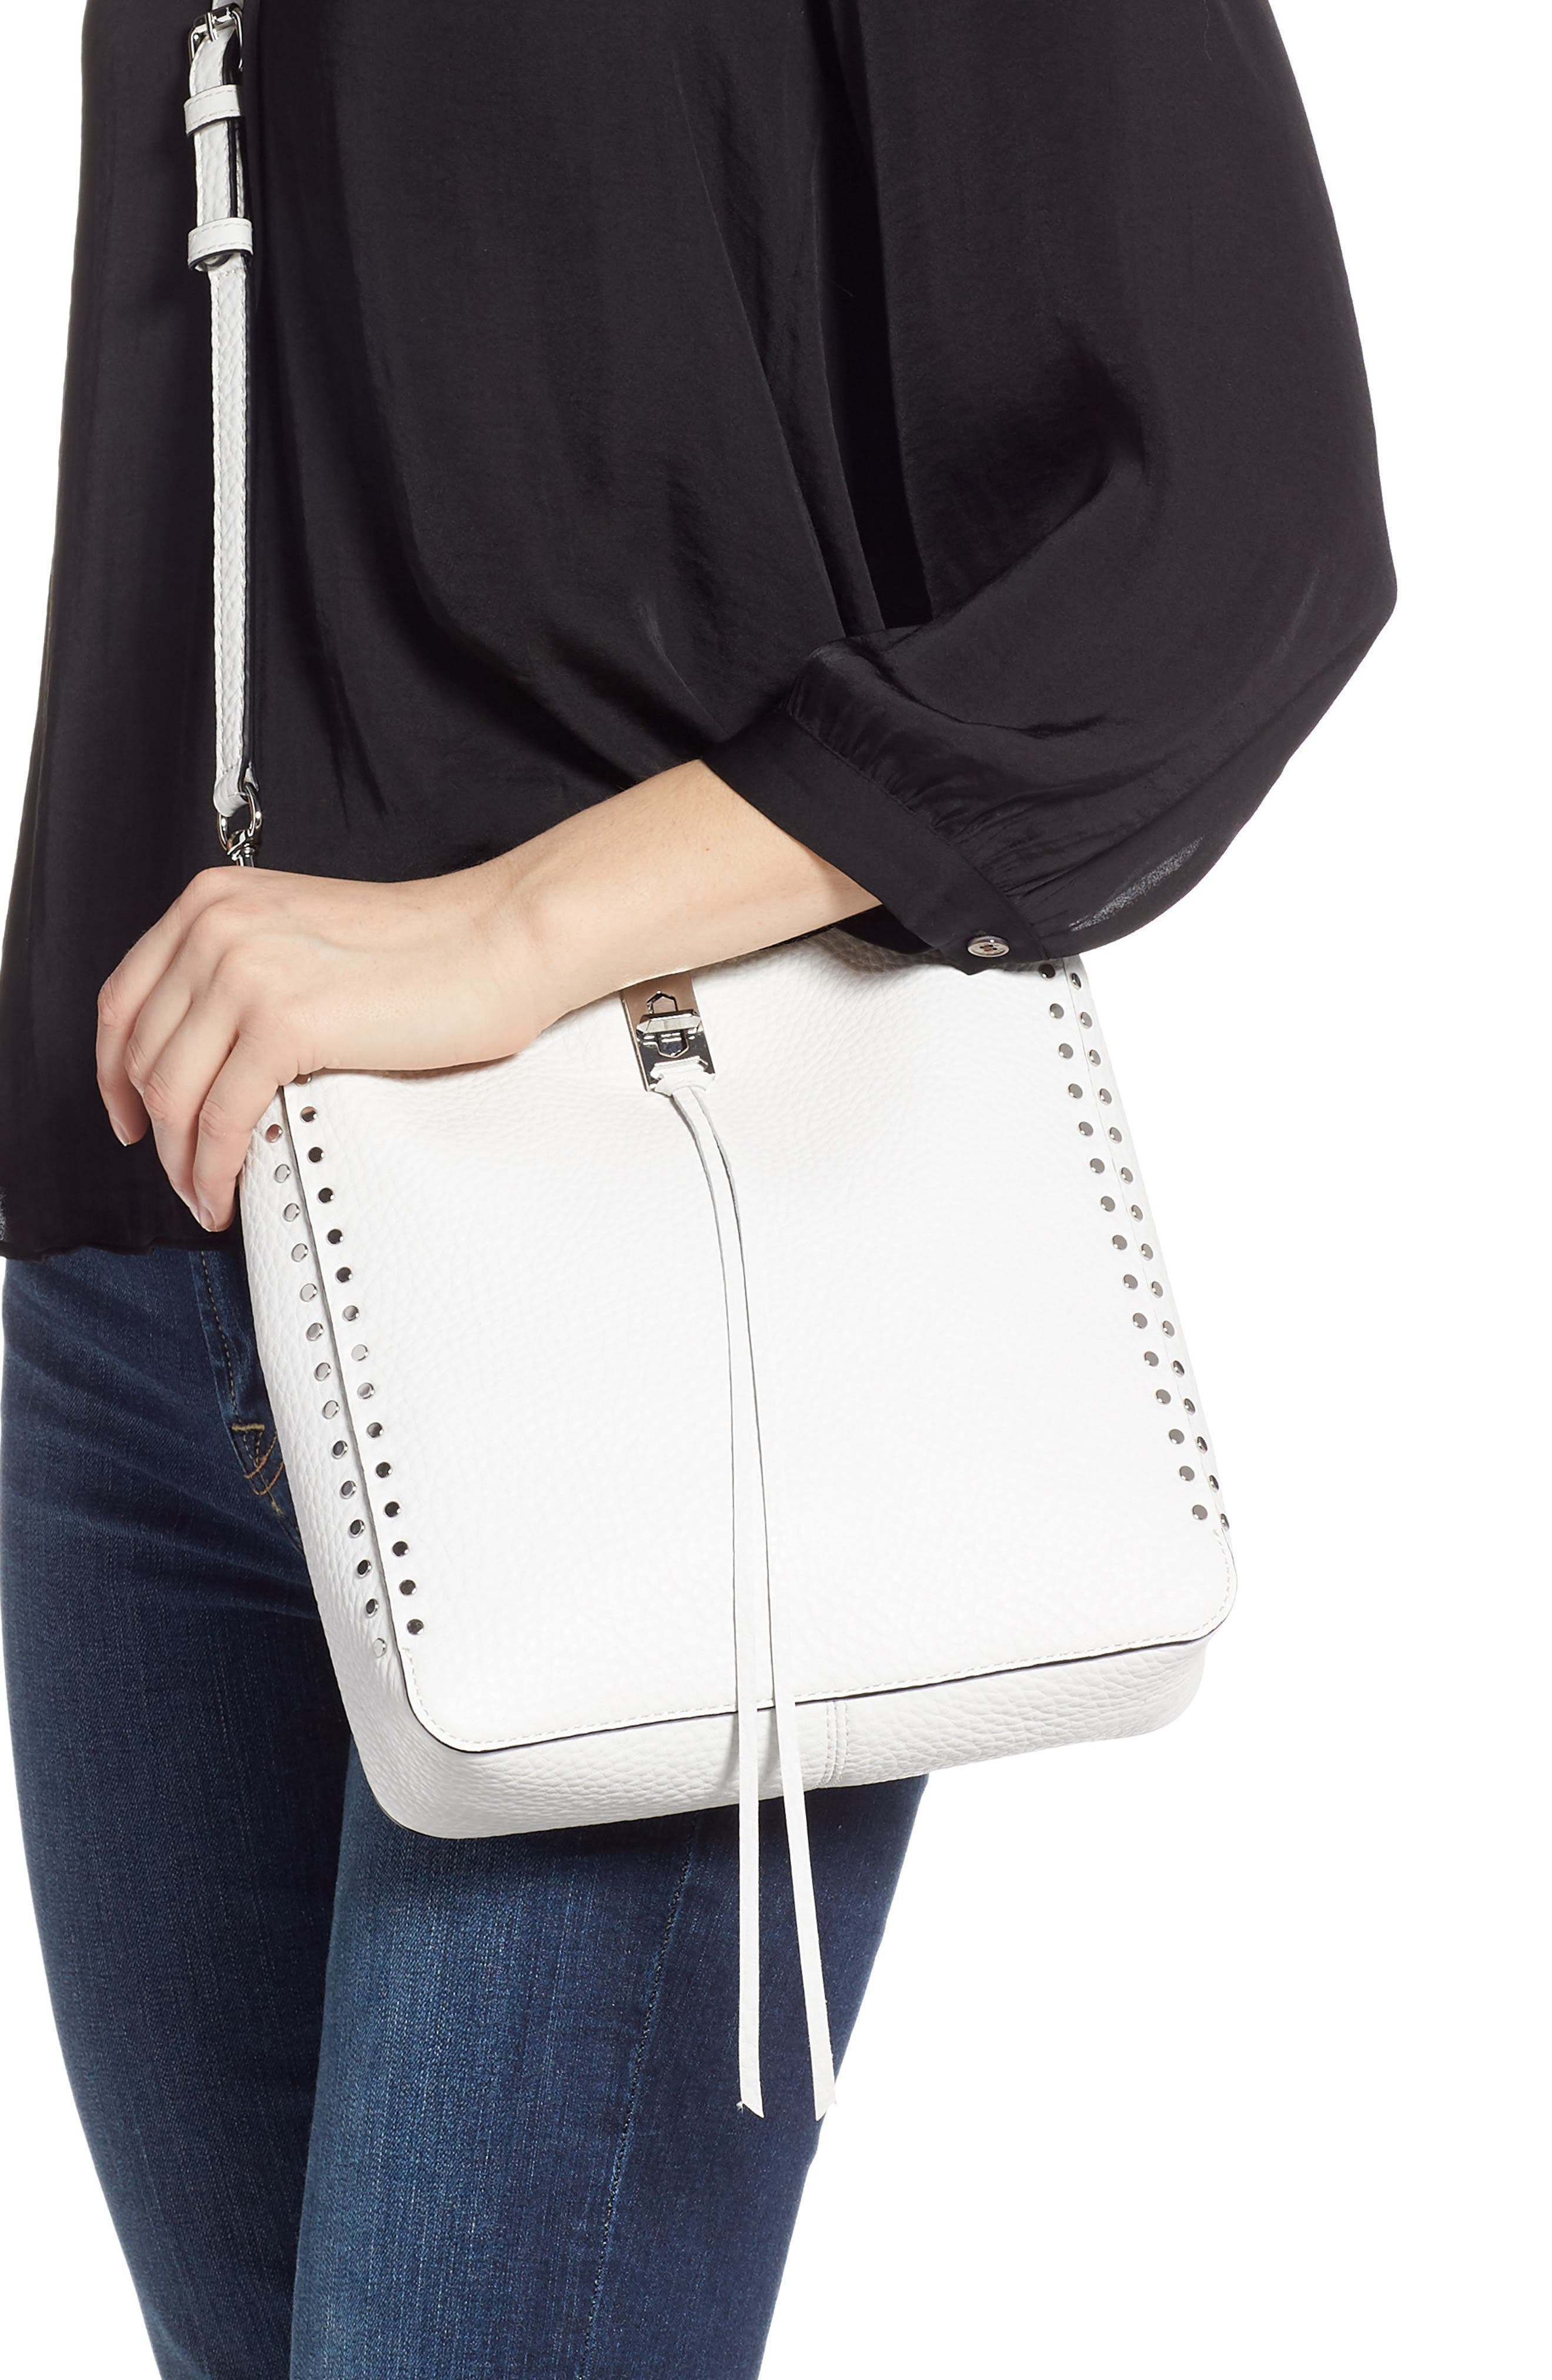 REBECCA MINKOFF, Small Studded Leather Feed Bag, Alternate thumbnail 4, color, OPTIC WHITE